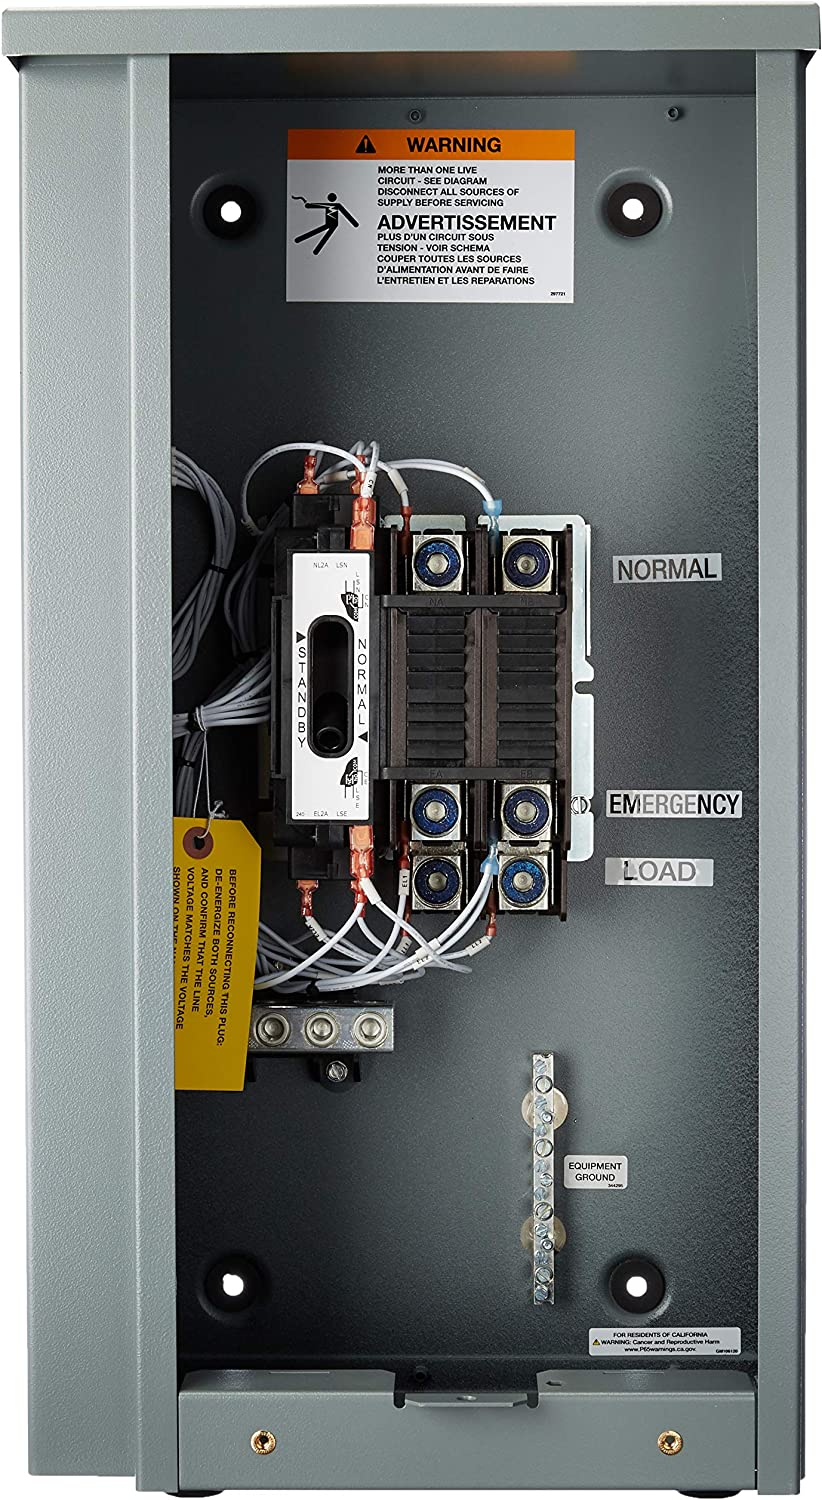 Kohler Transfer Switch Wiring Diagram from images-na.ssl-images-amazon.com